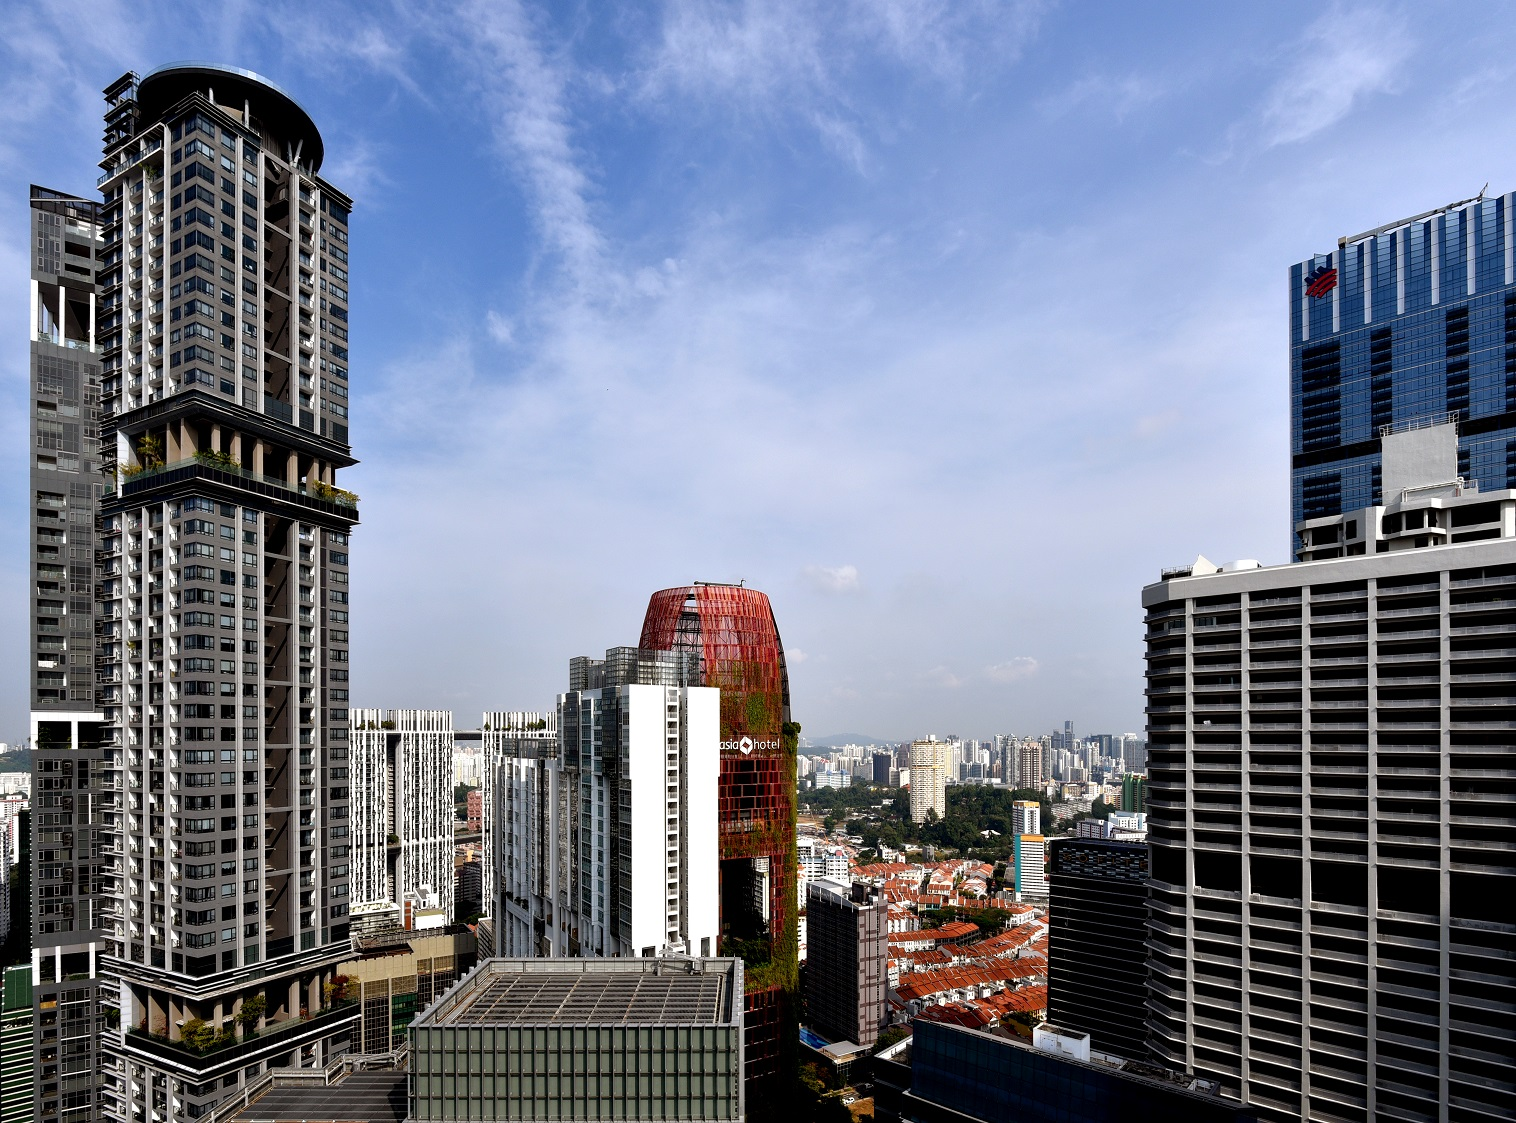 When Lumiere was first launched for sale over a decade ago, there were fewer than a handful of private residential projects in the Shenton Way-Tanjong Pagar area (Credit: Albert Chua/EdgeProp Singapore) - EDGEPROP SINGAPORE